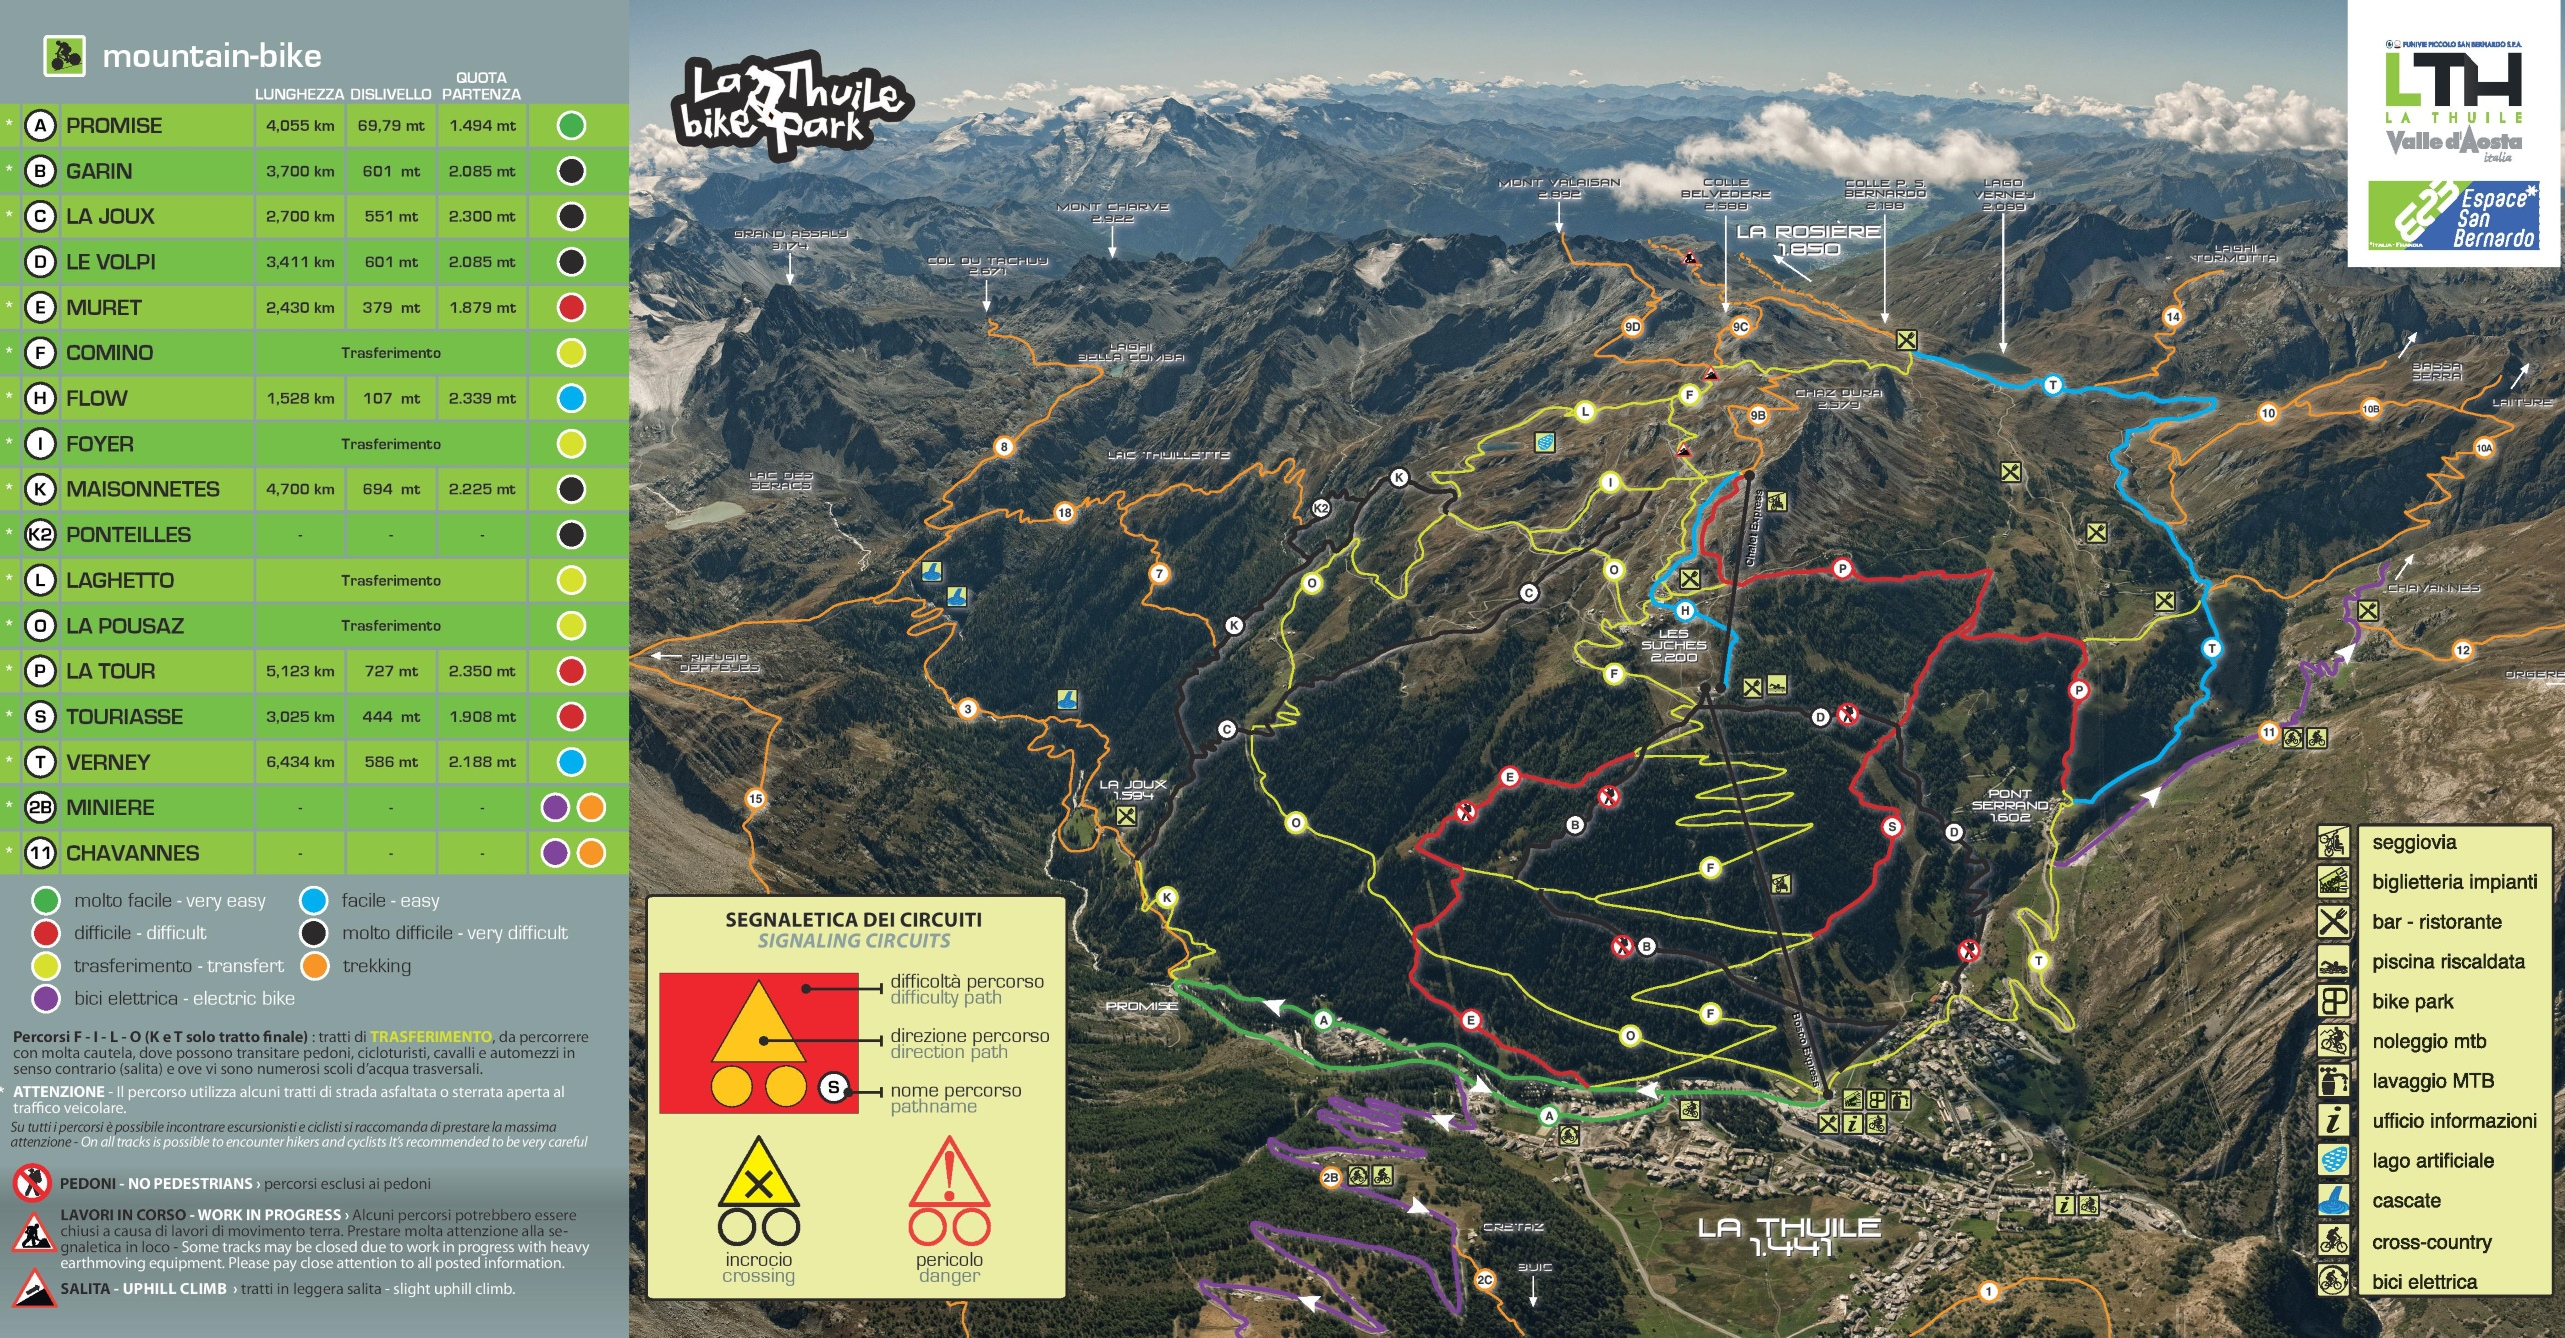 La Thuile bike map